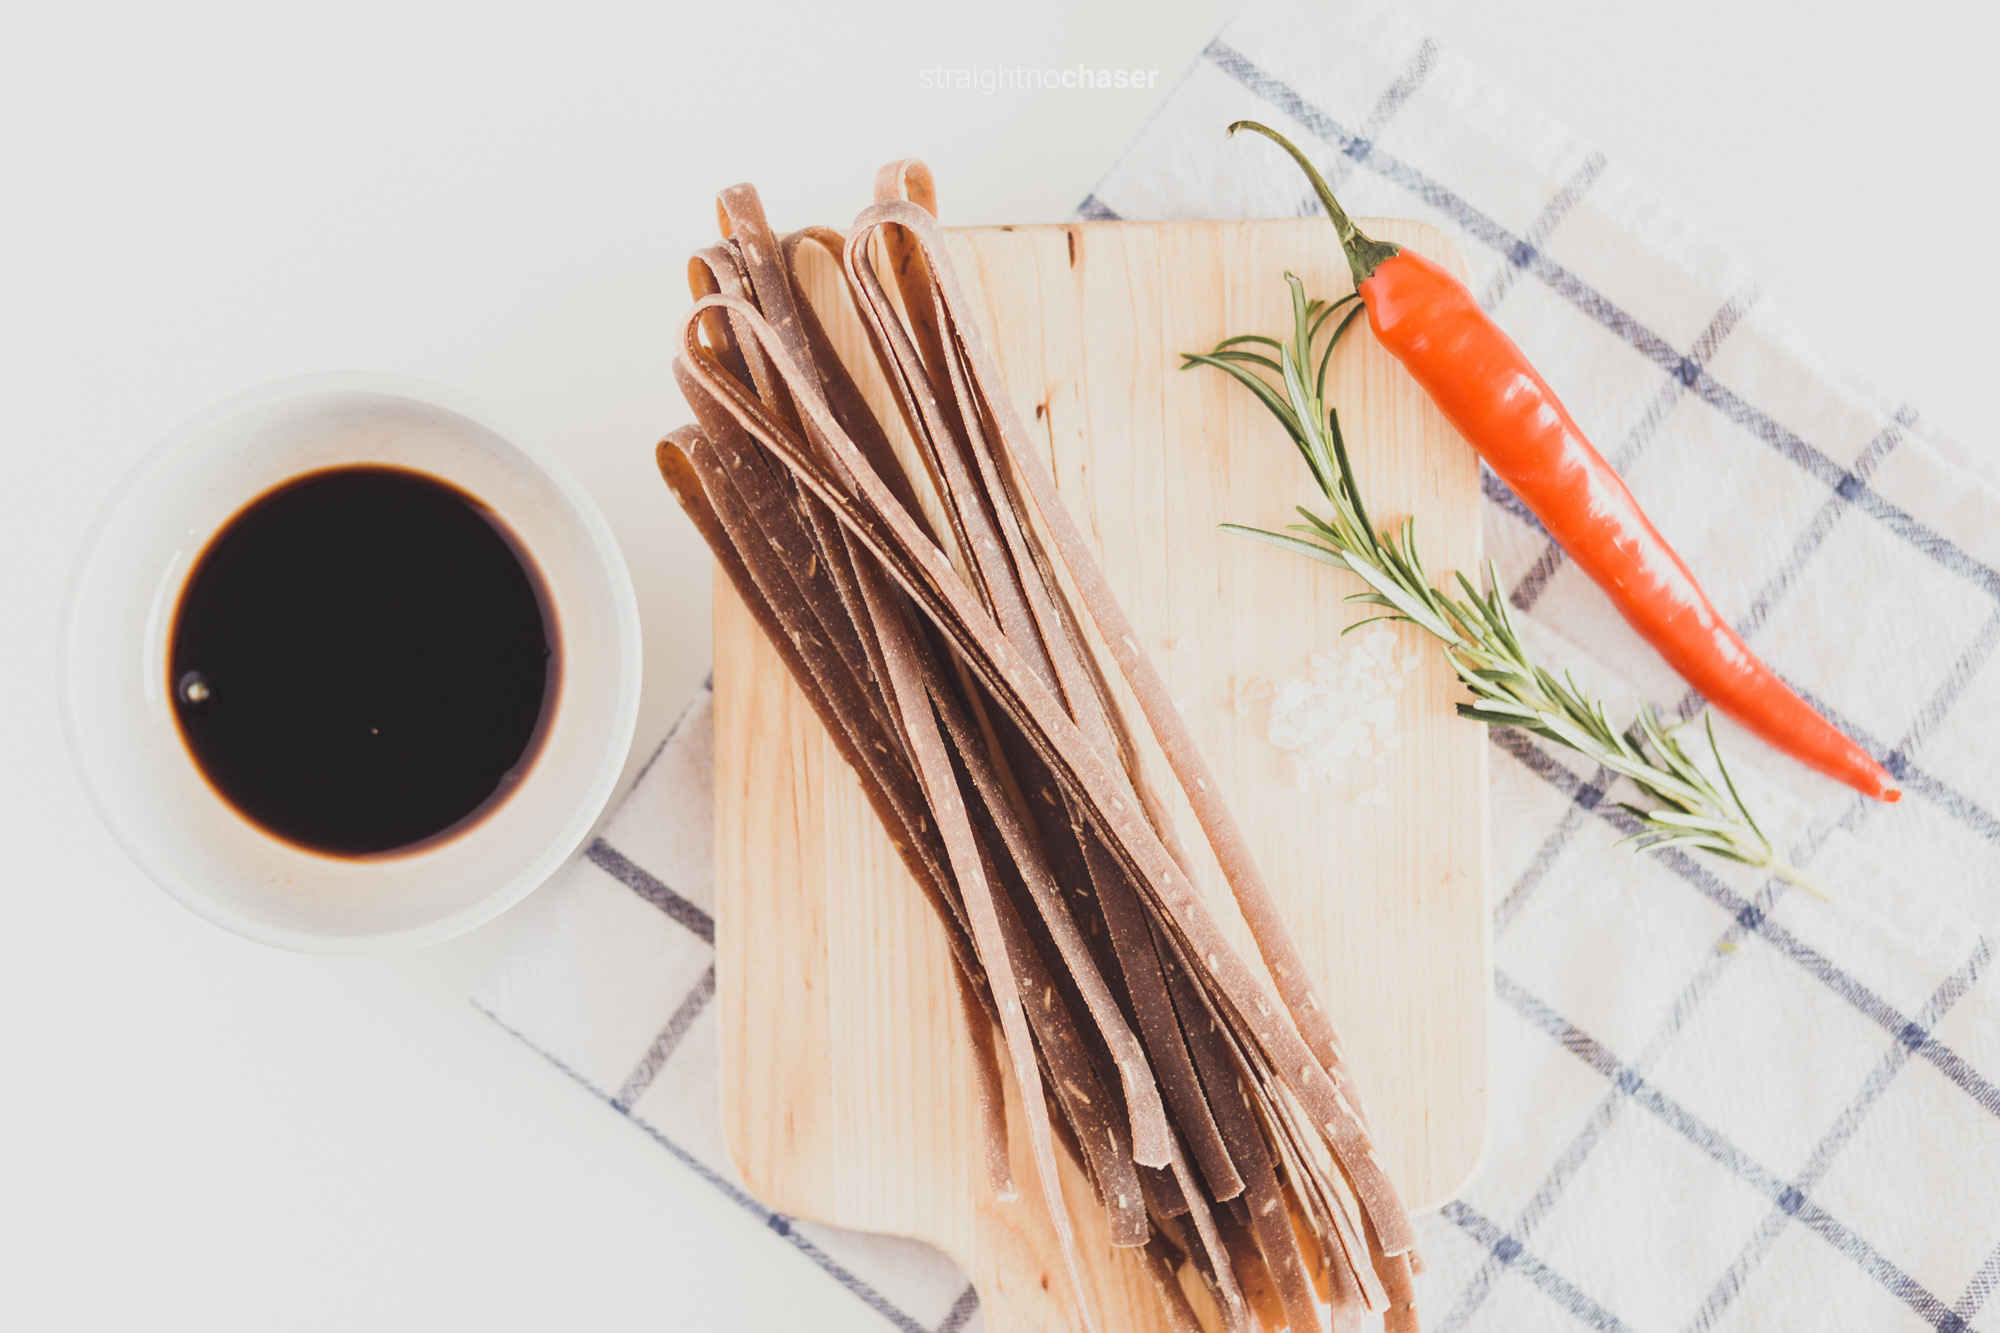 Balsamic chilli rosemary Favoured pasta available online by Pasta People- Canberra food styling and photography